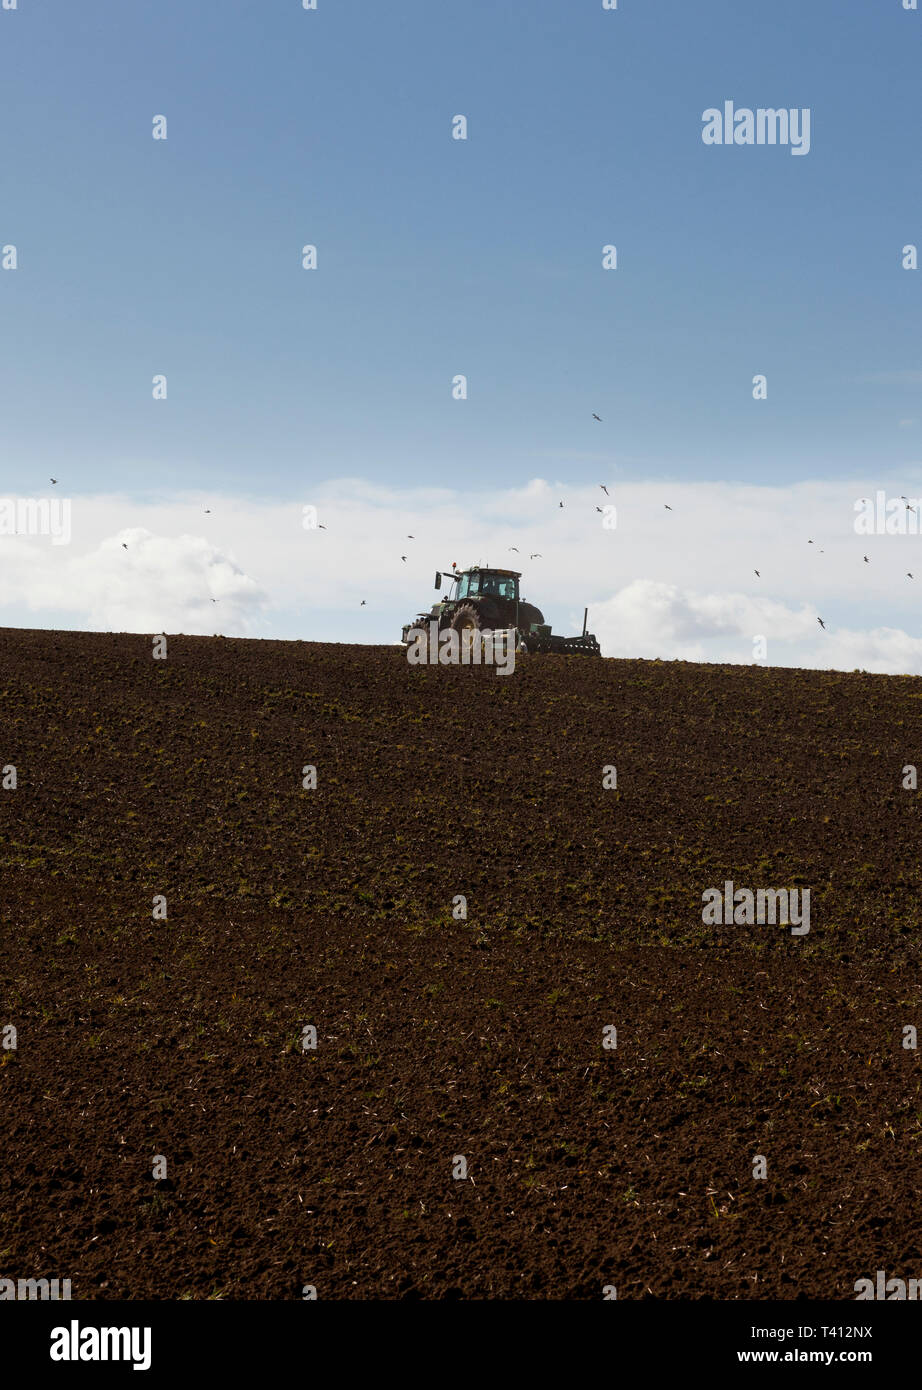 A tractor cultivating a field on a hill - Stock Image